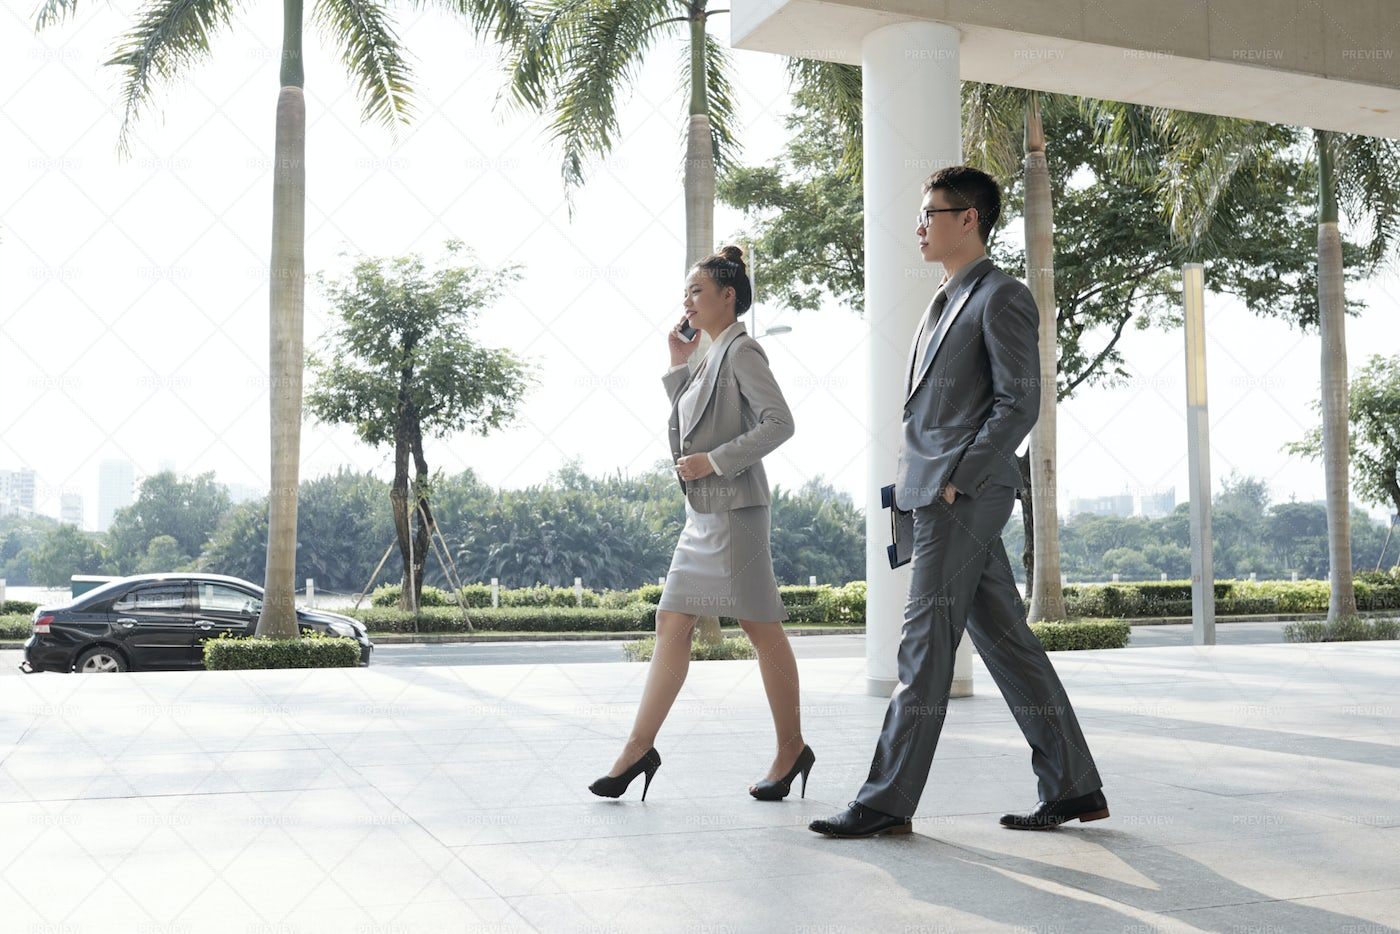 Business People Walking In The City: Stock Photos